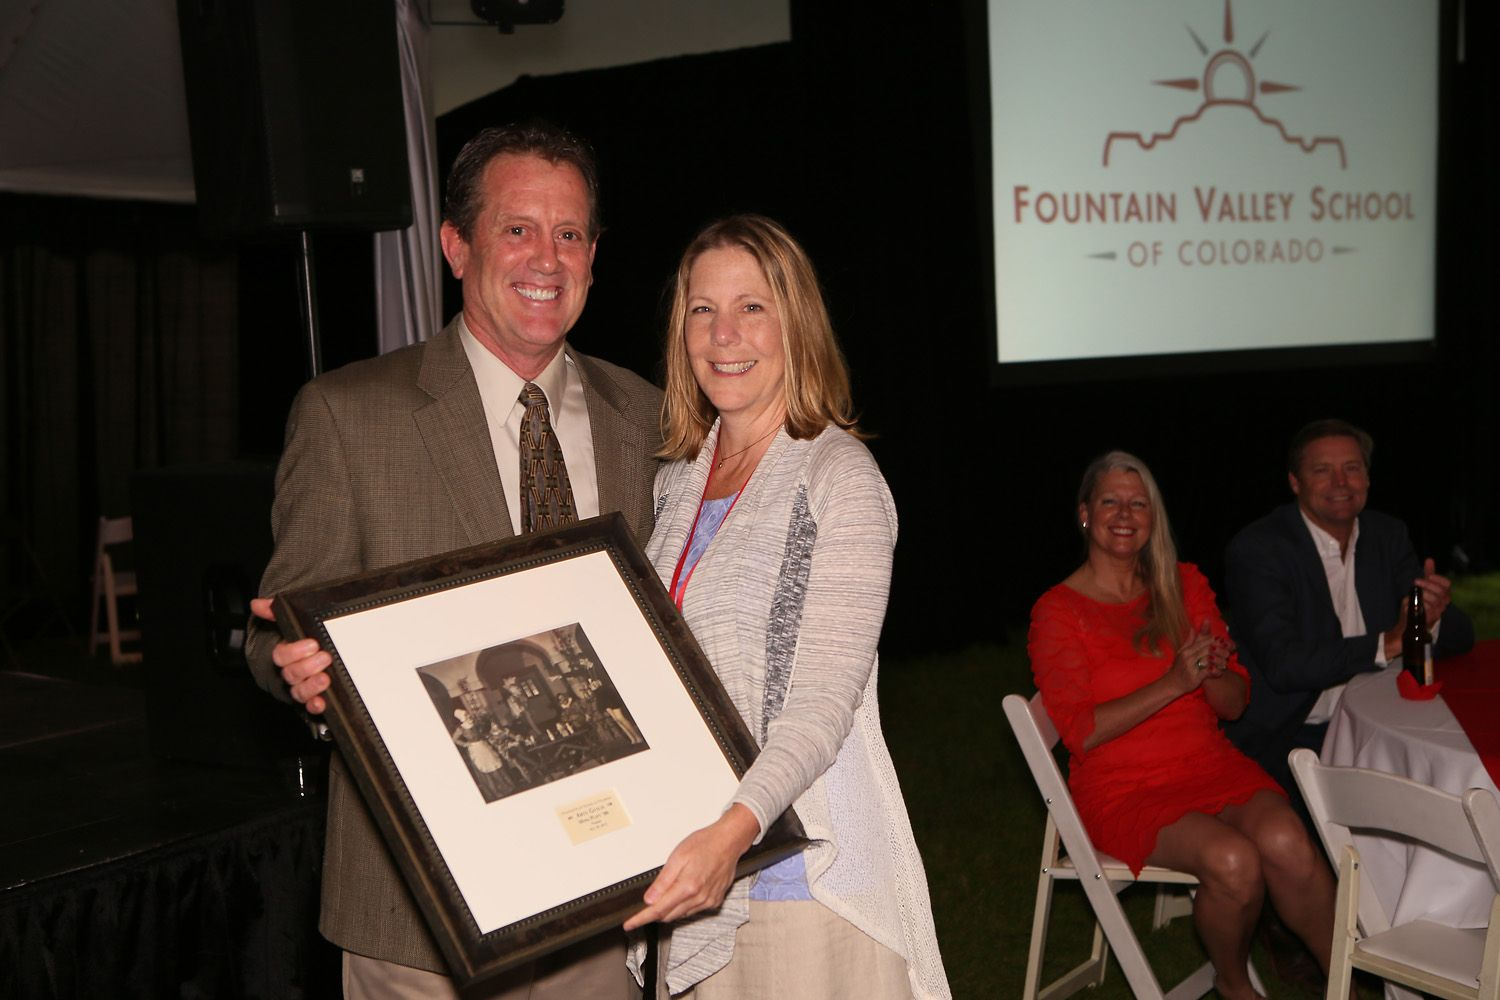 2015 inductee Myra Platt '80 with Arts Faculty Mark Dillon